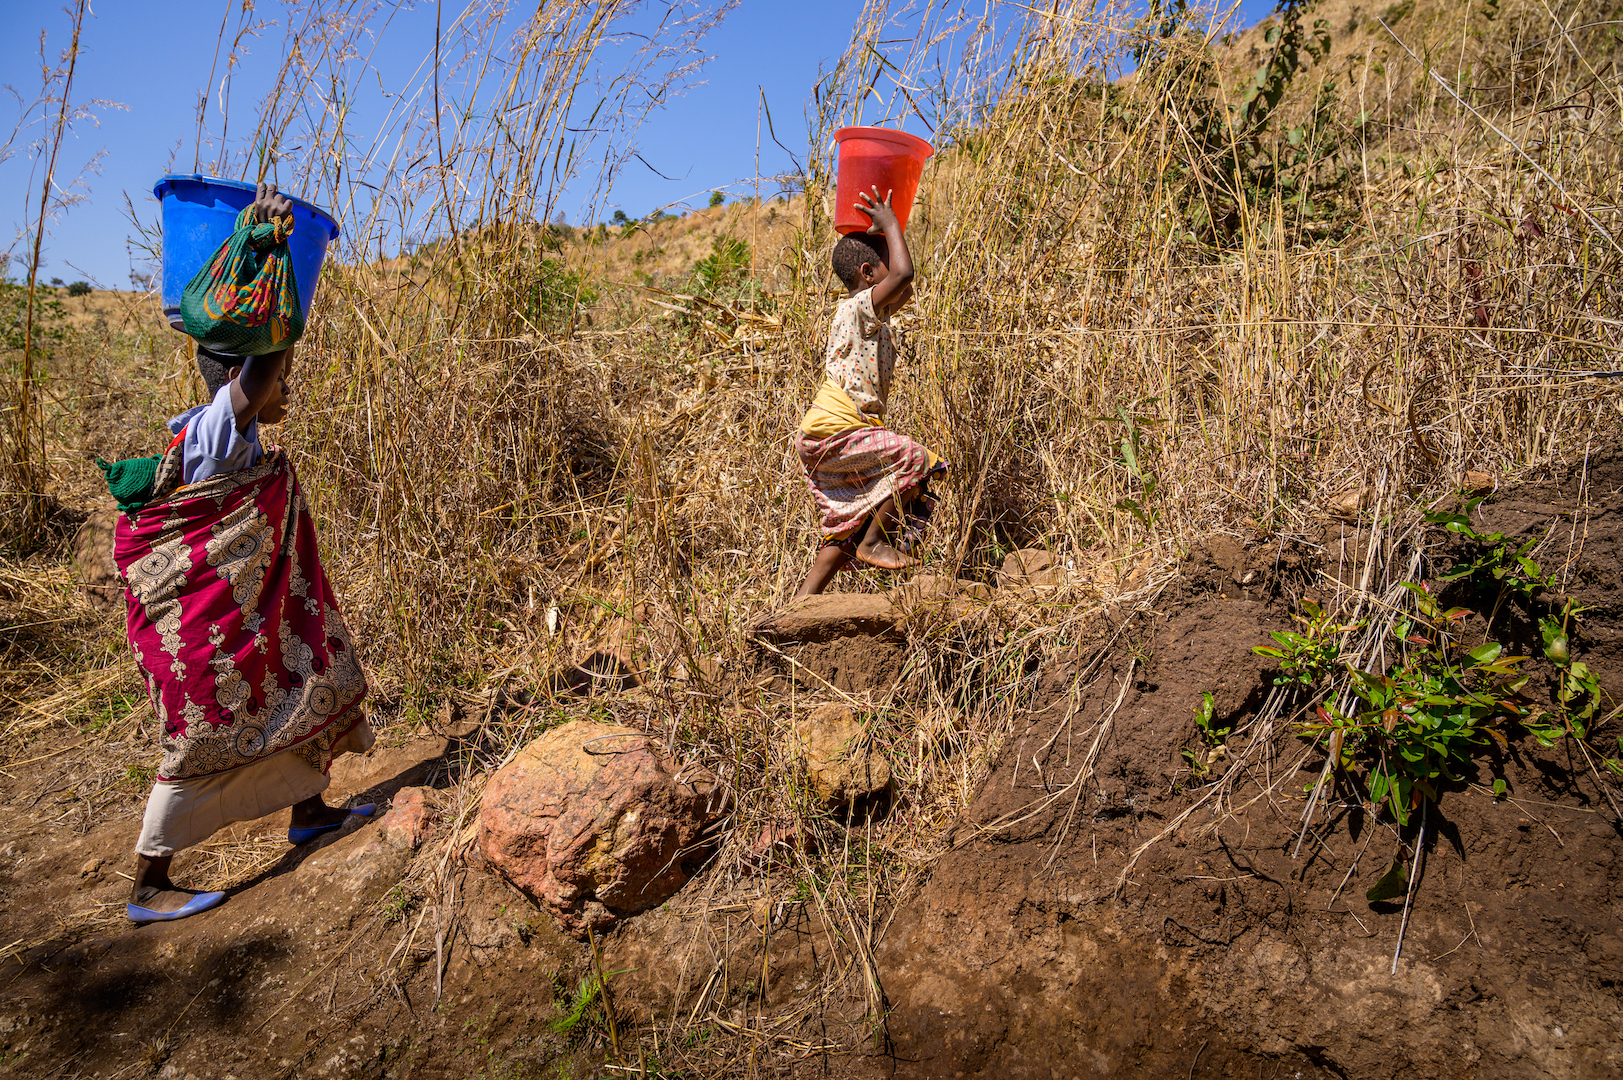 Mother and daughter in Malawi make difficult trek to gather water.